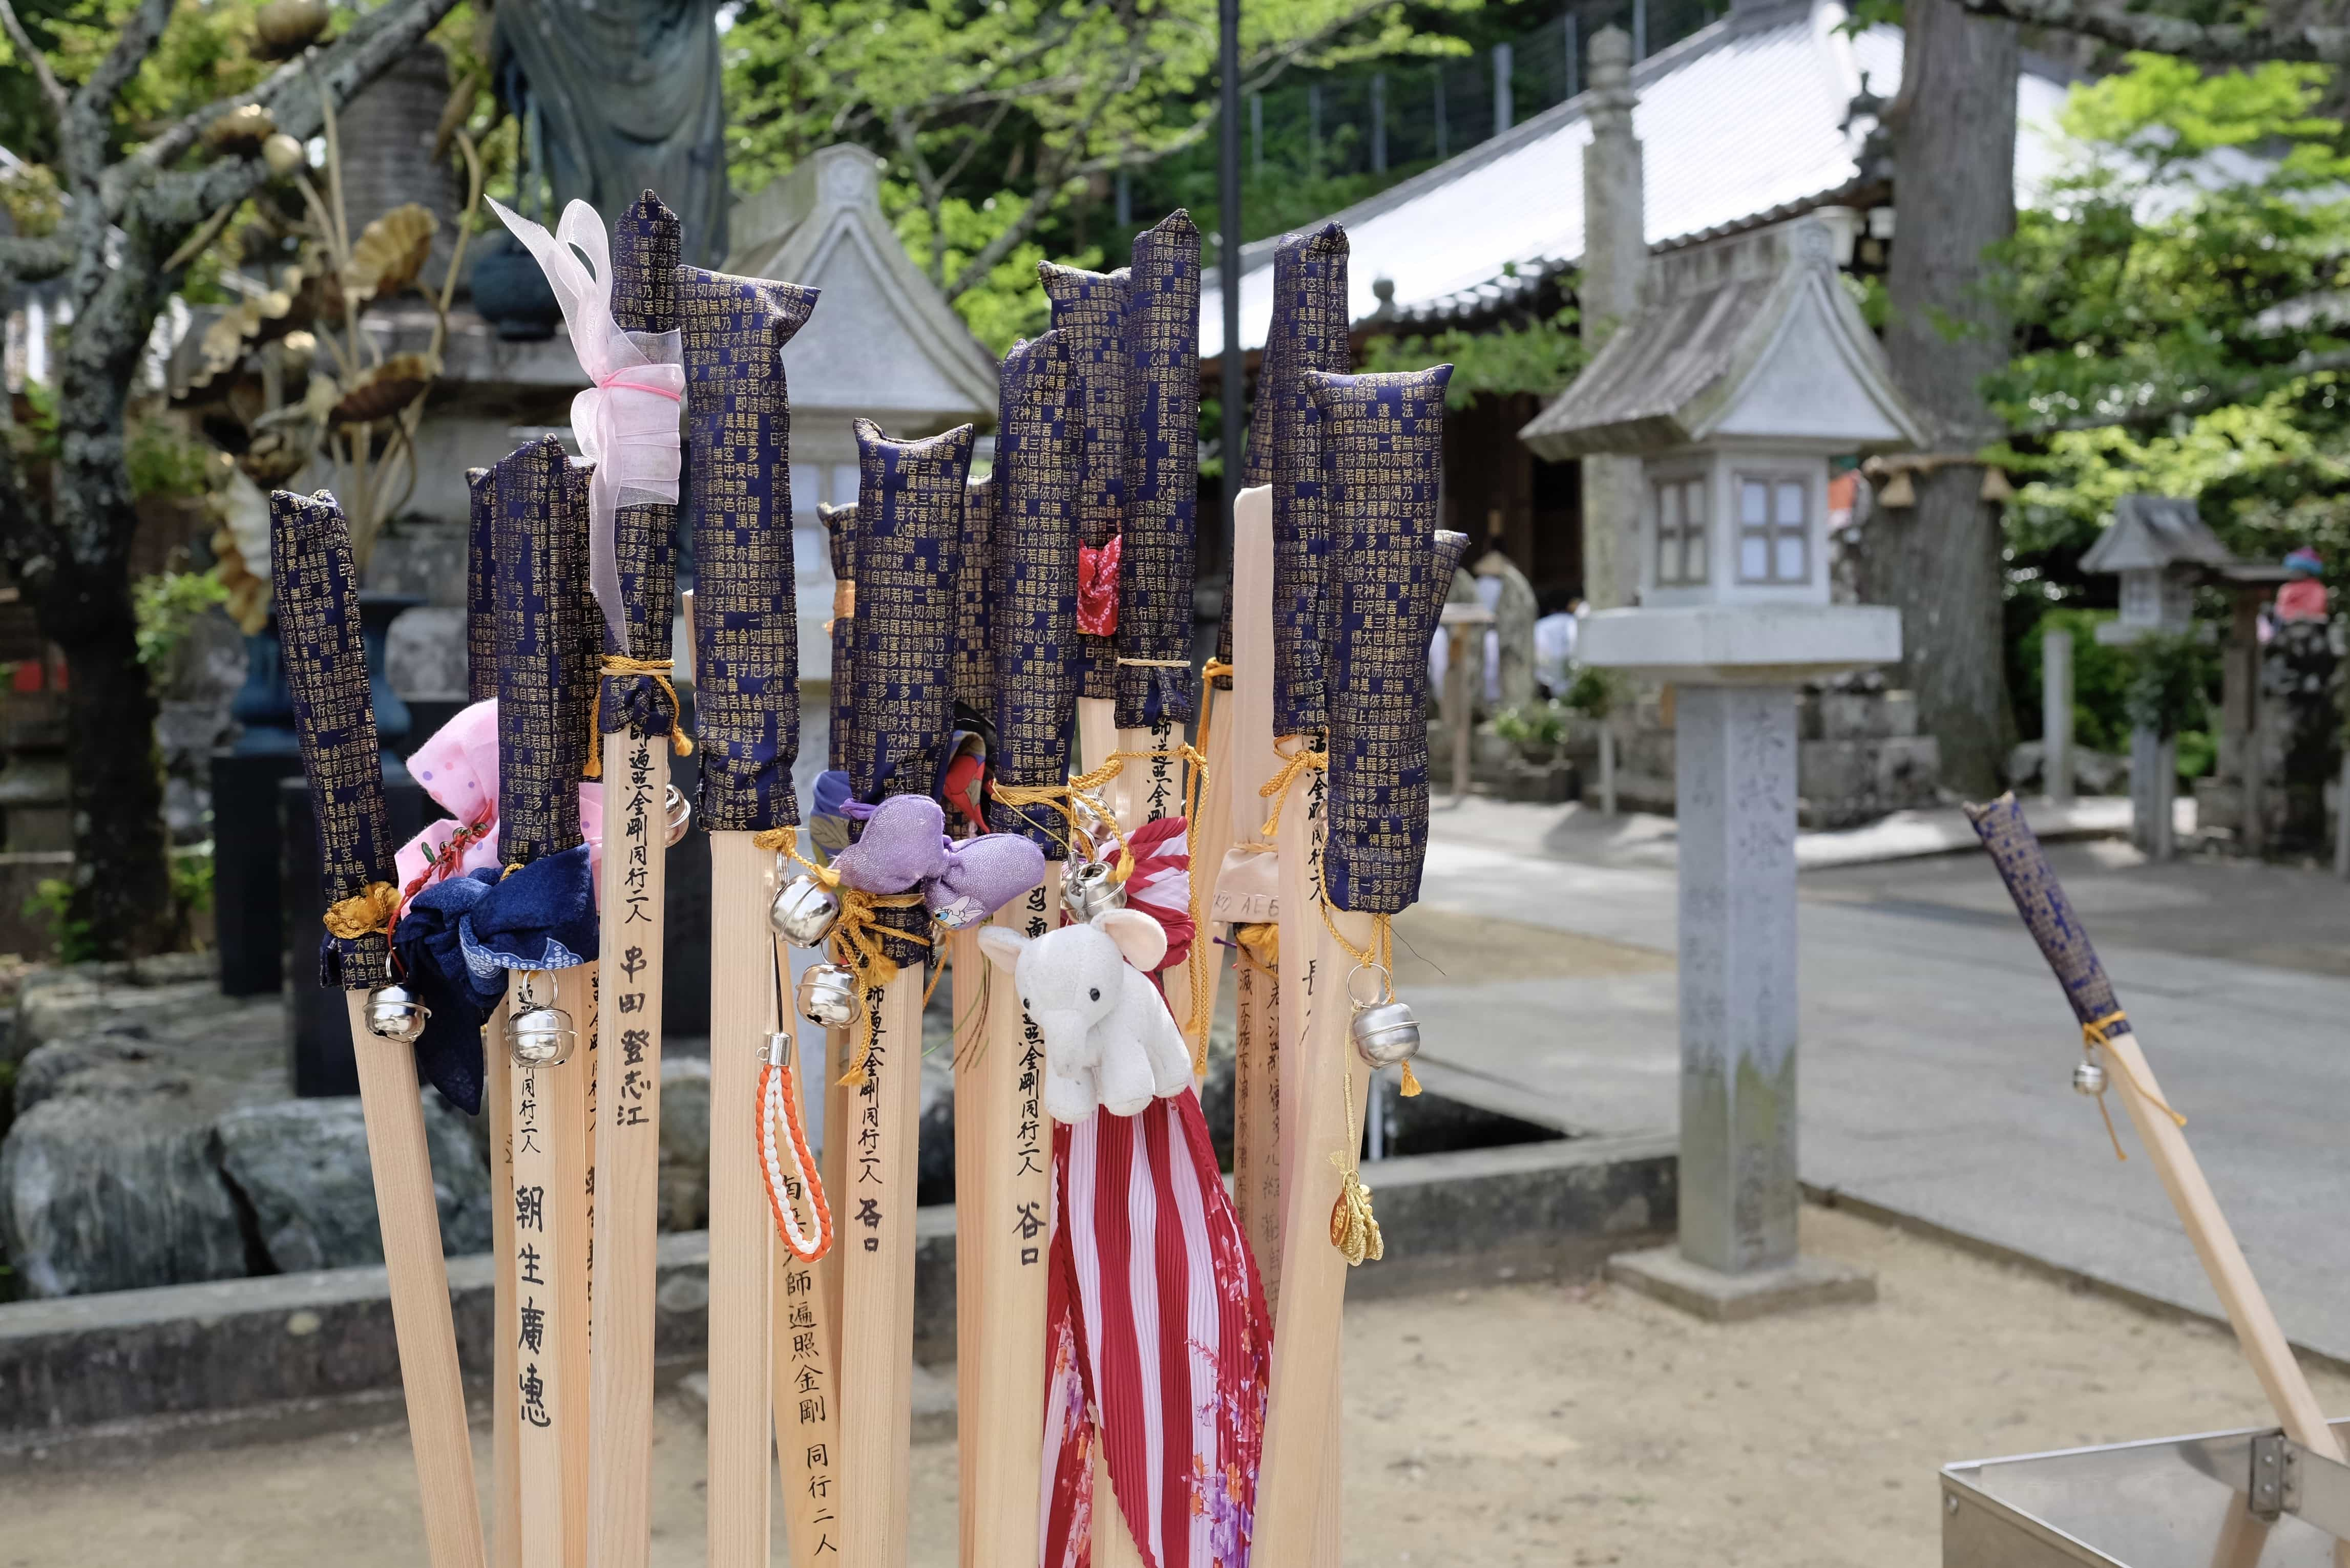 Wooden staffs at Yakuō-ji